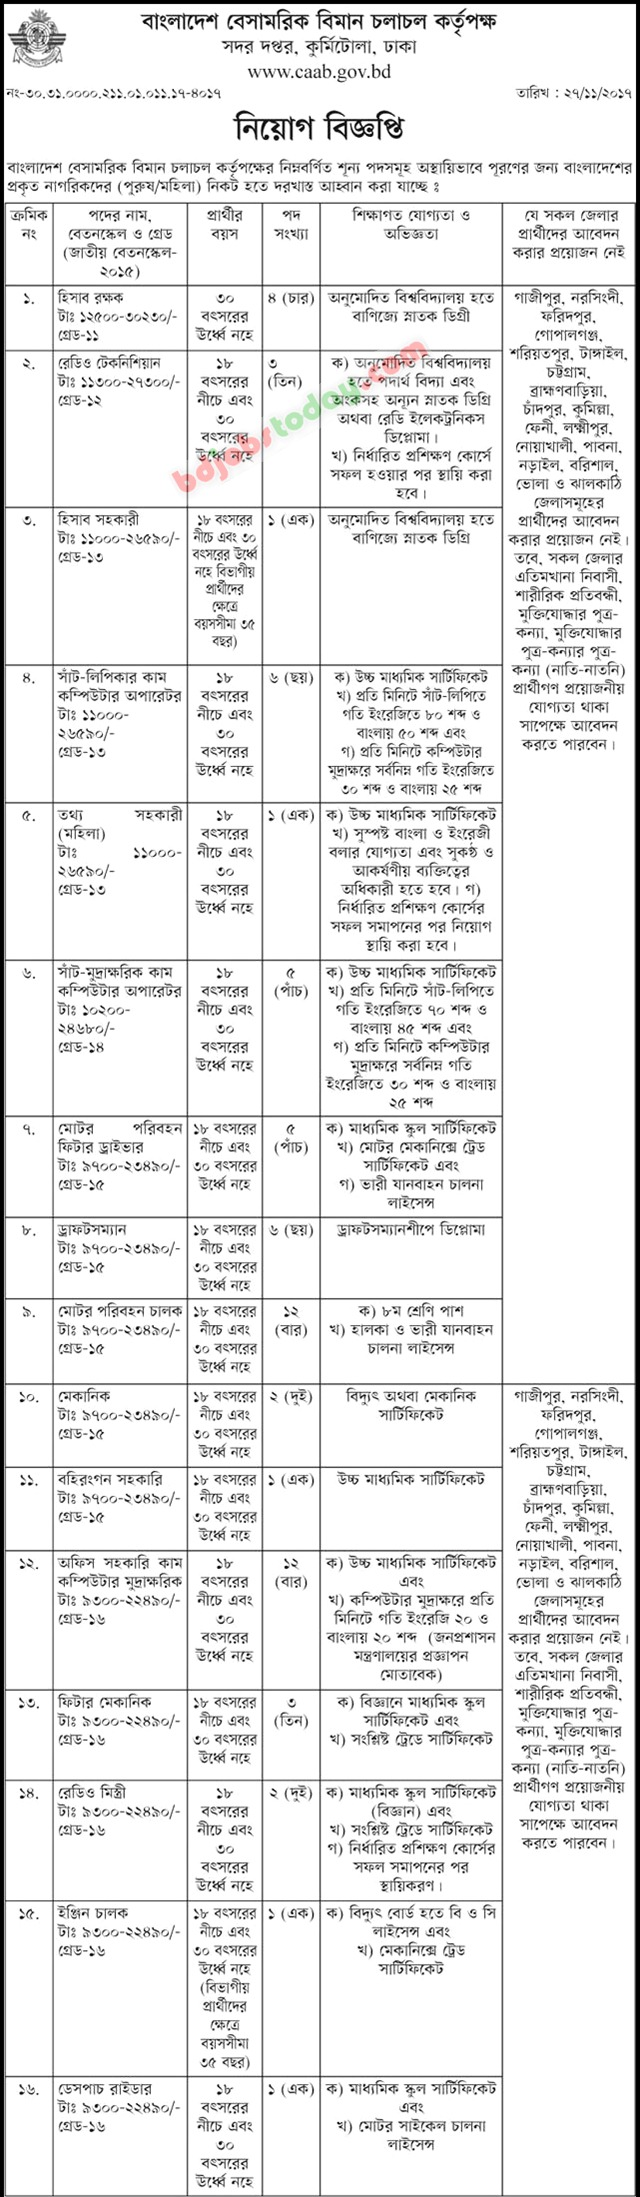 Civil Aviation Authority, Bangladesh (CAAB) jobs